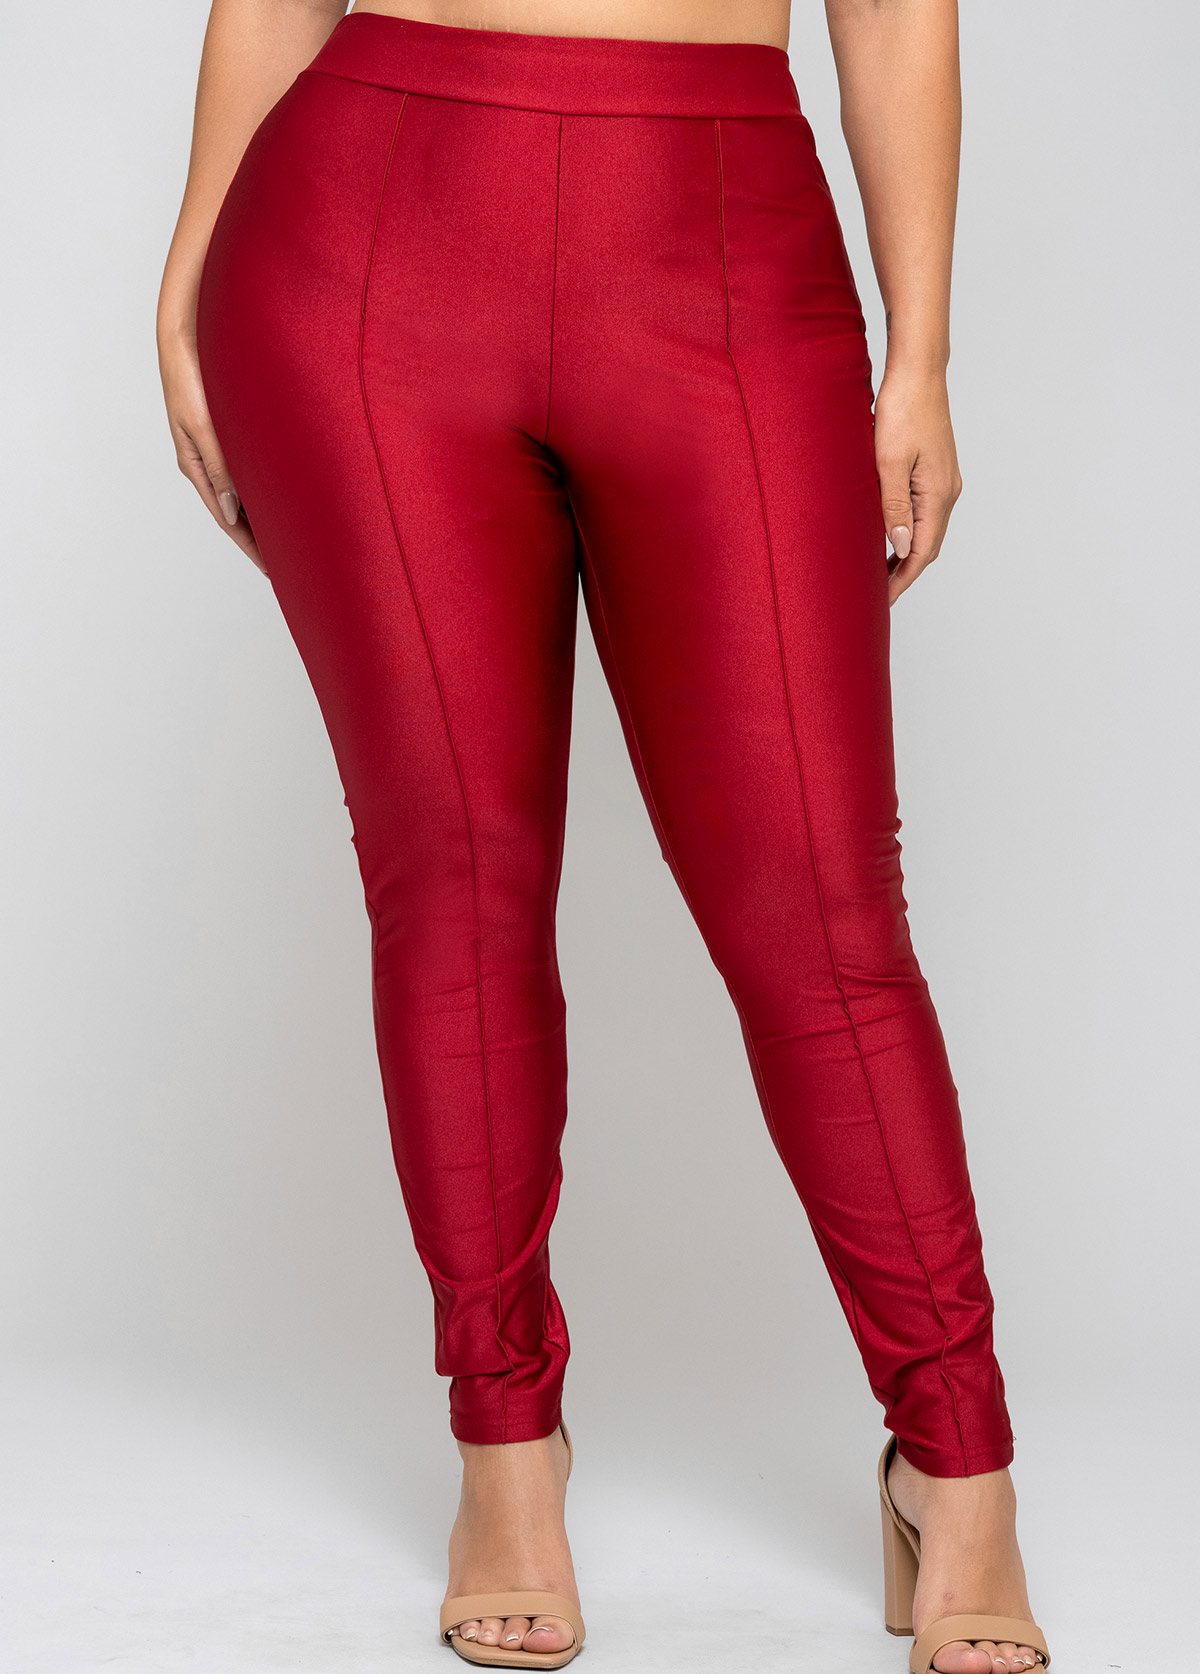 Plus Size Solid High Waisted Legging